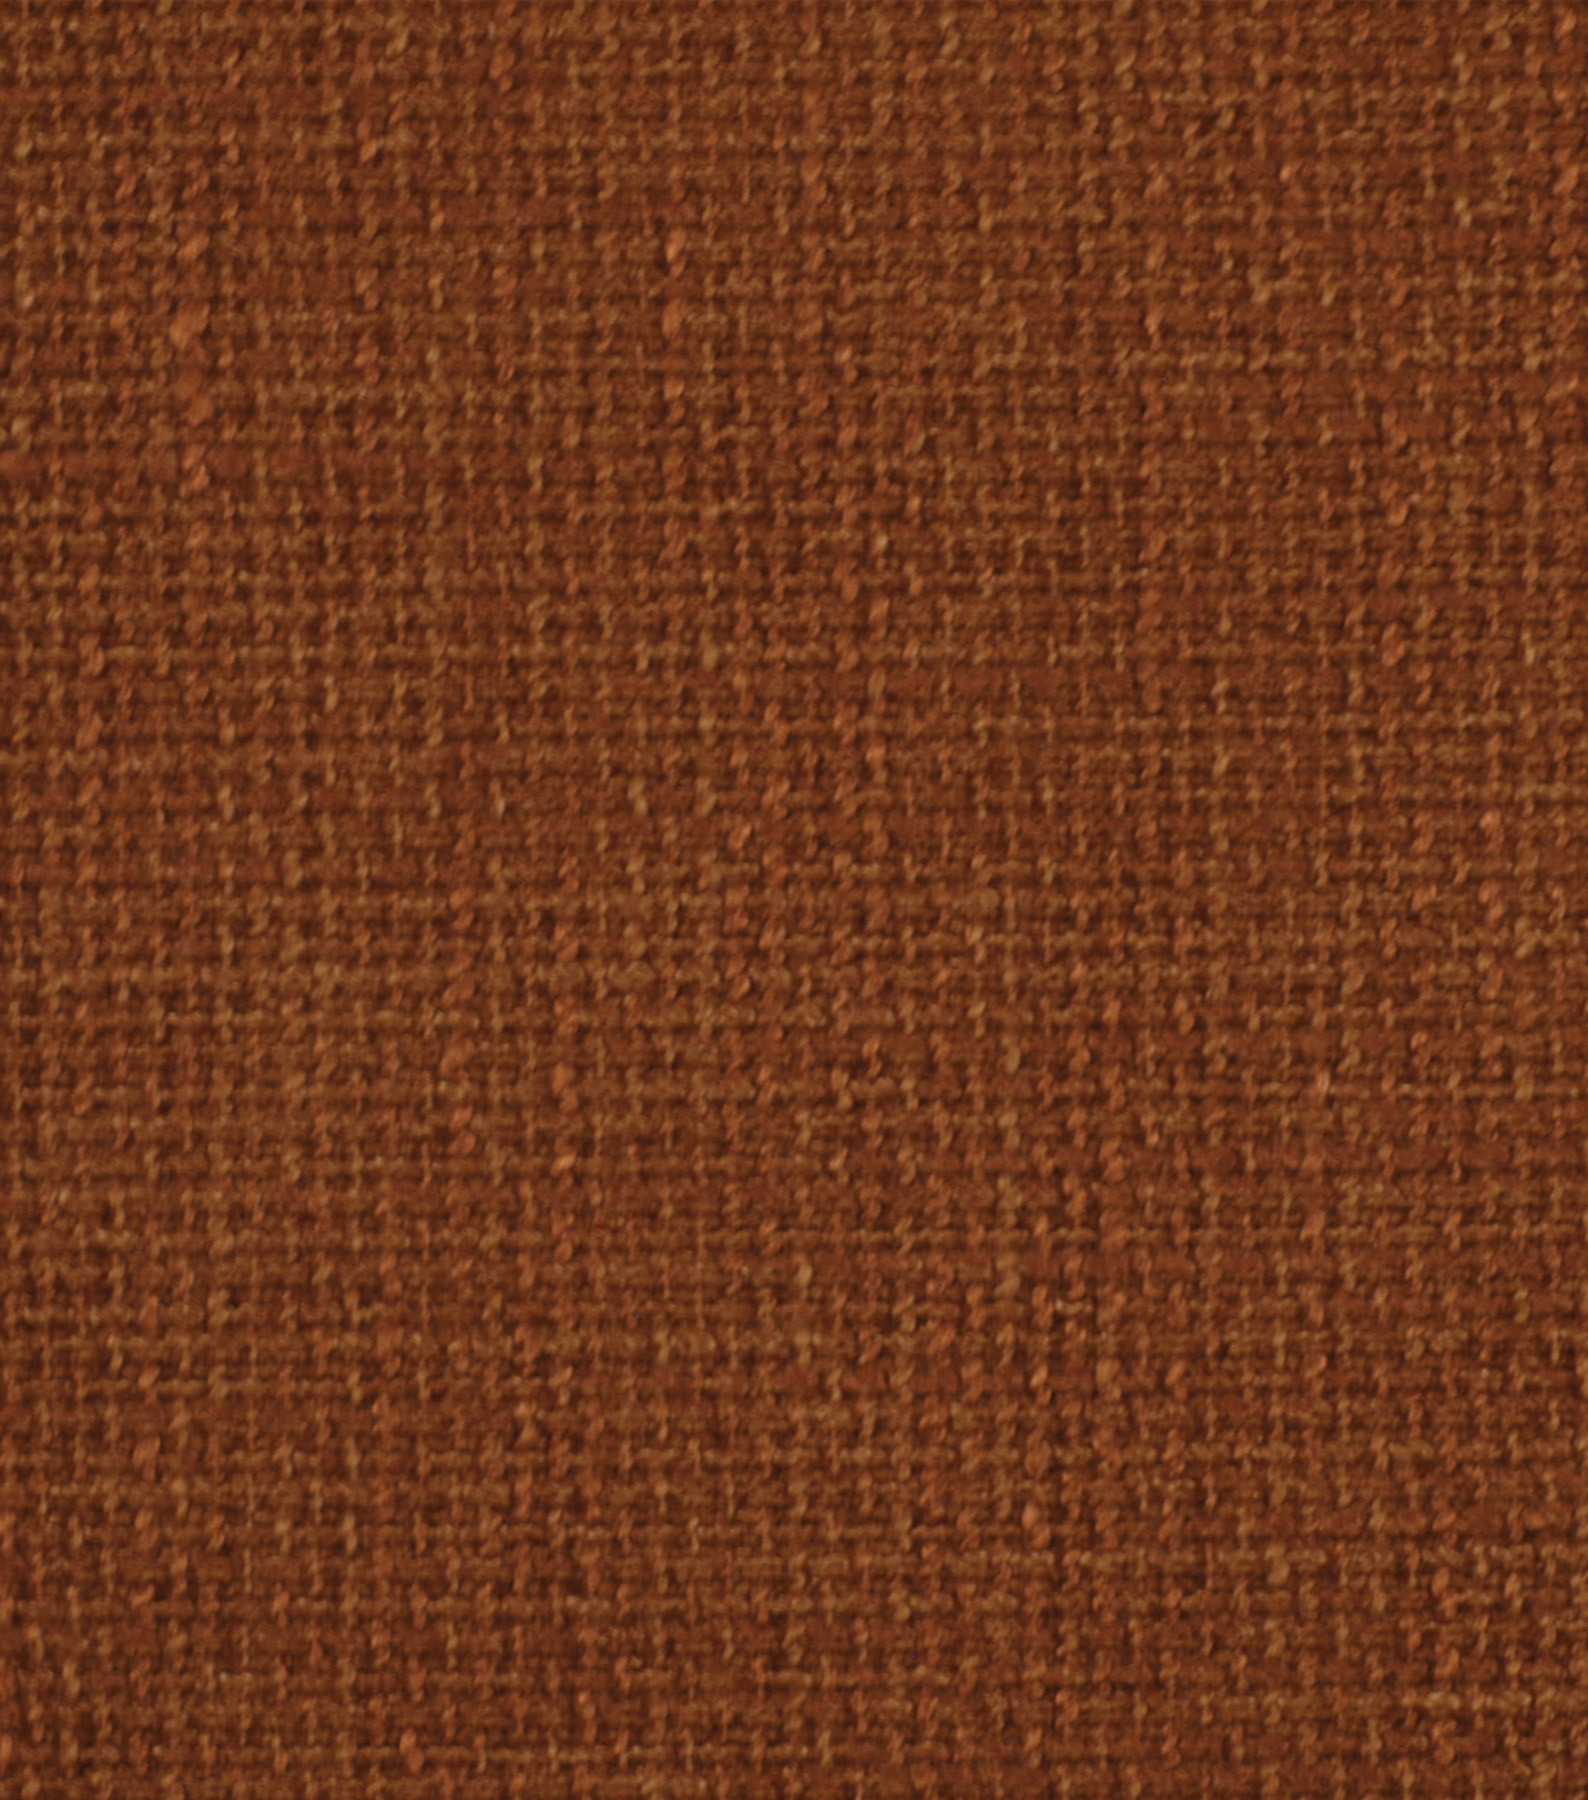 Home Decor 8\u0022x8\u0022 Fabric Swatch-Signature Series Tex Weave Coral